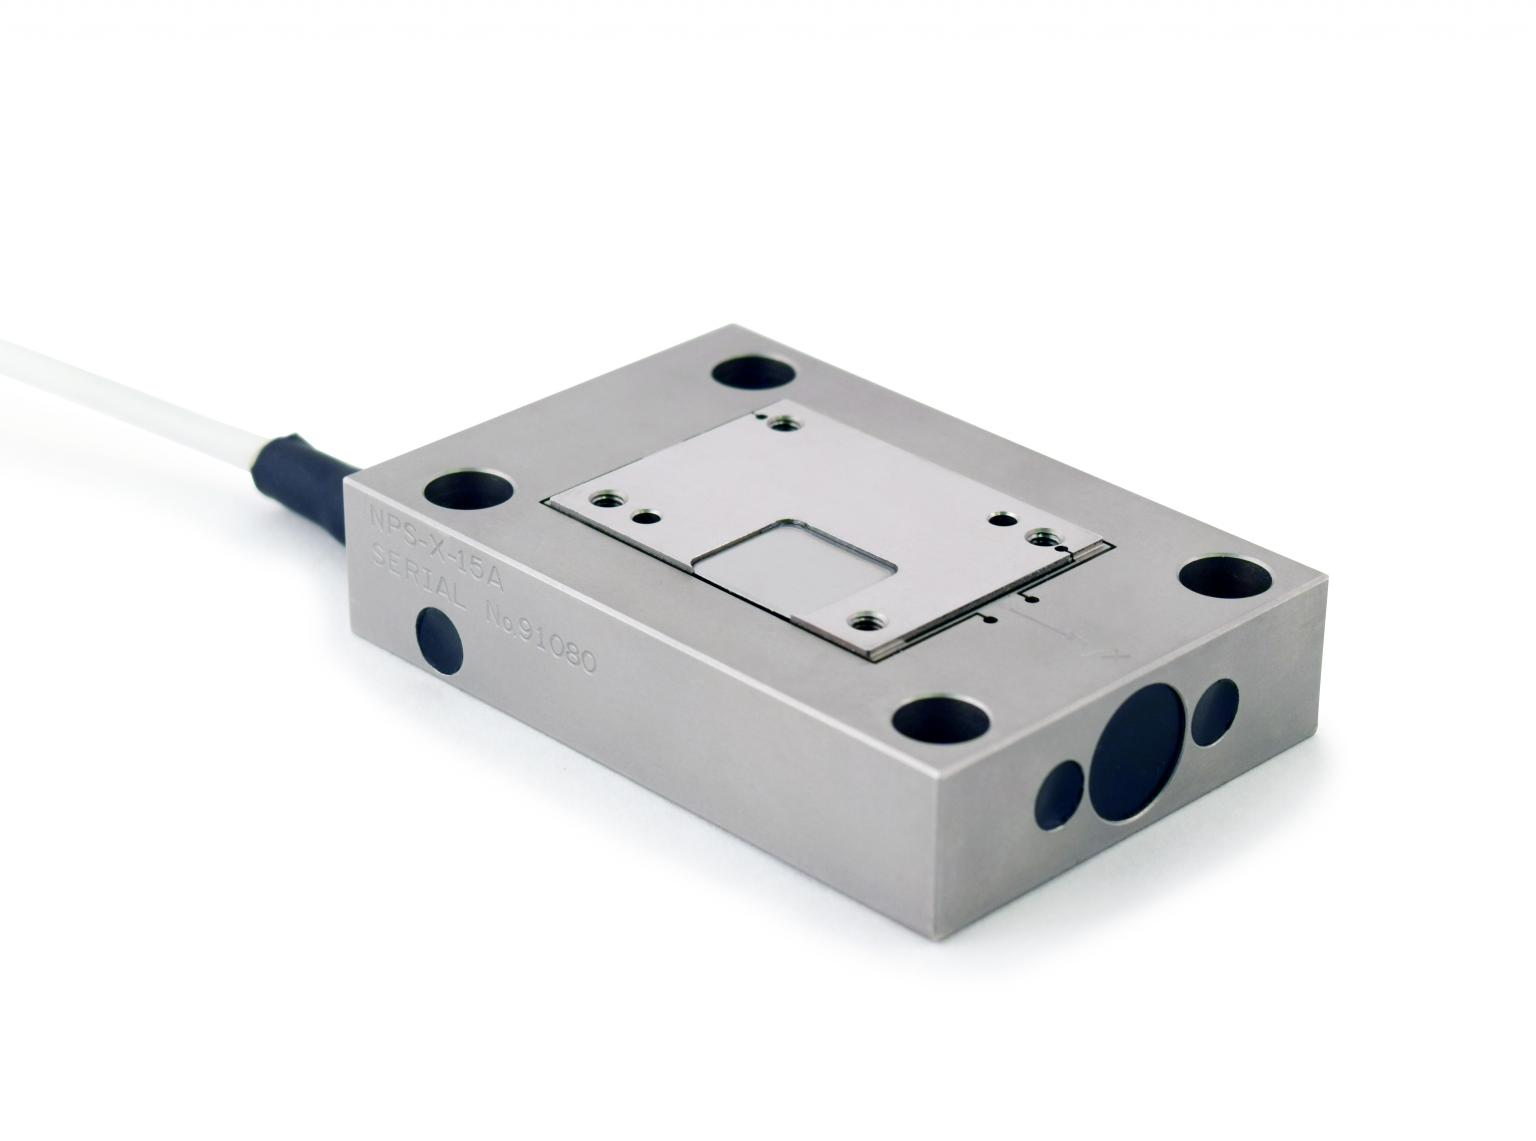 Queensgate leaders in state-of-the-art Nanopositioning solutions, provide bespoke products to meet customer requirements